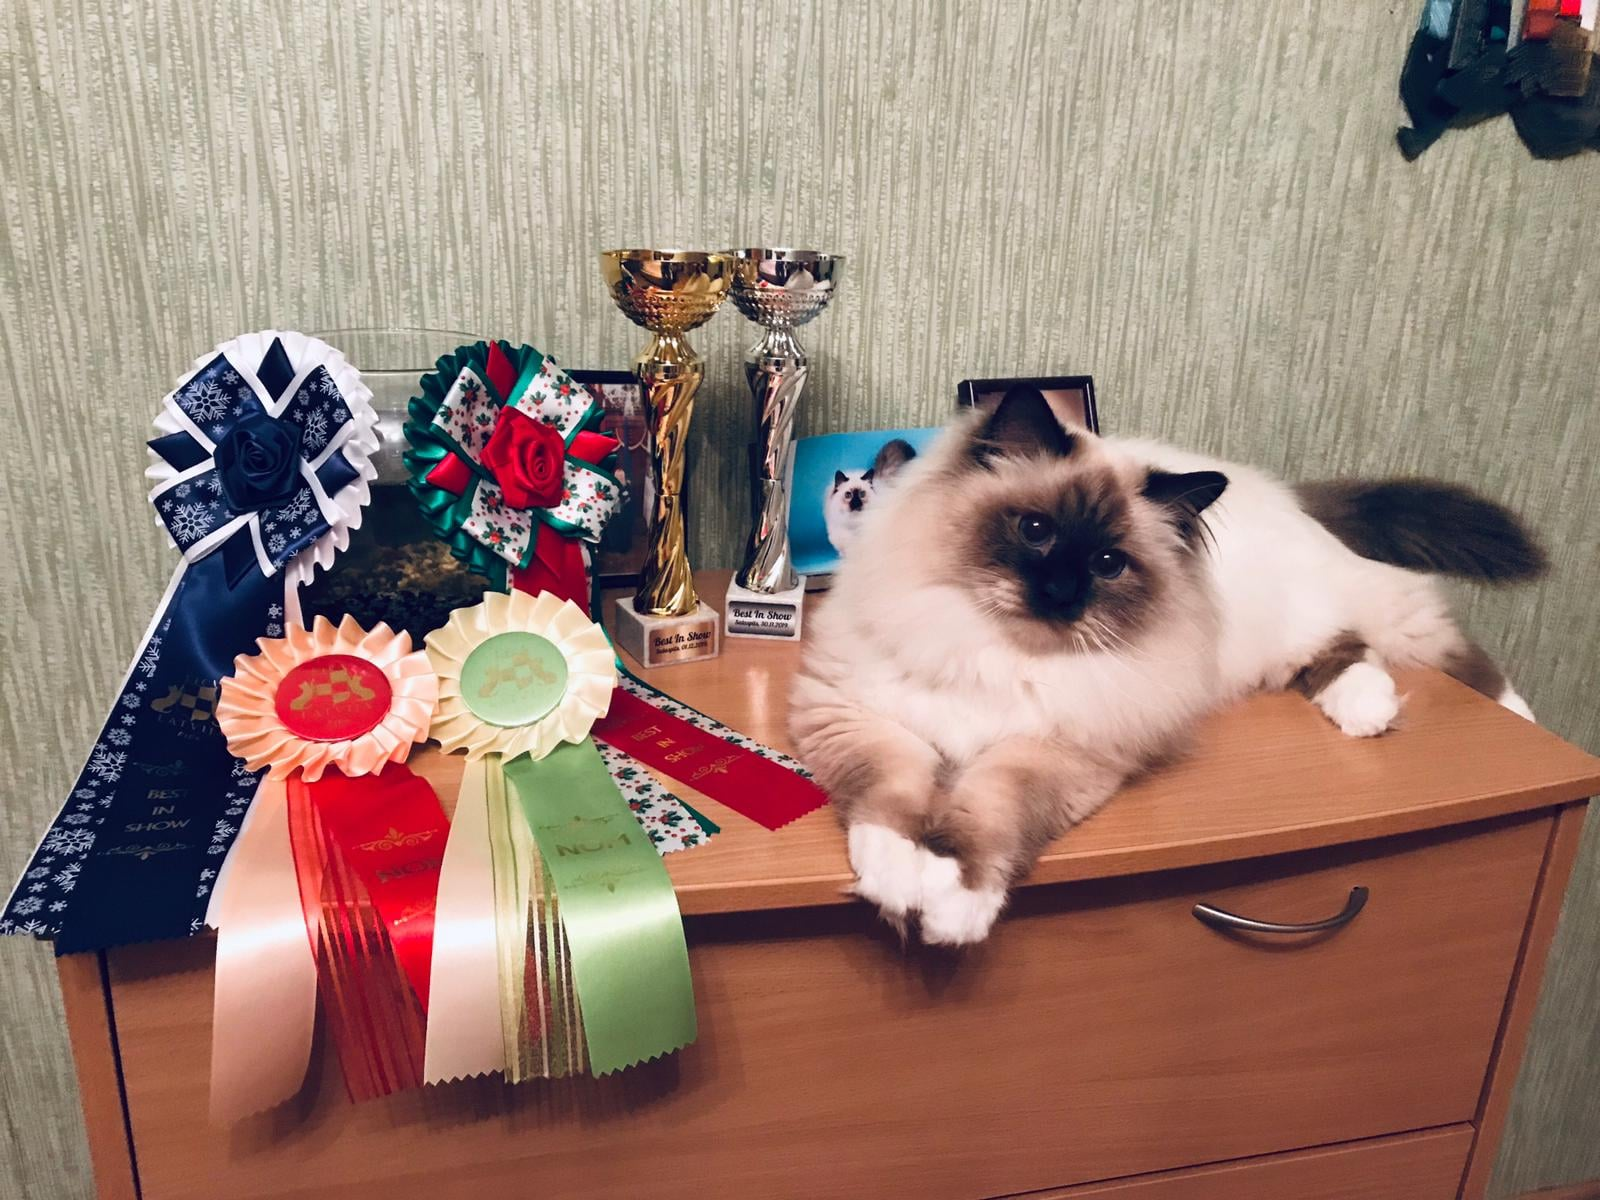 International Cat Show Salaspils, Latvia, FIFe, 30.11.-01.12.2019.